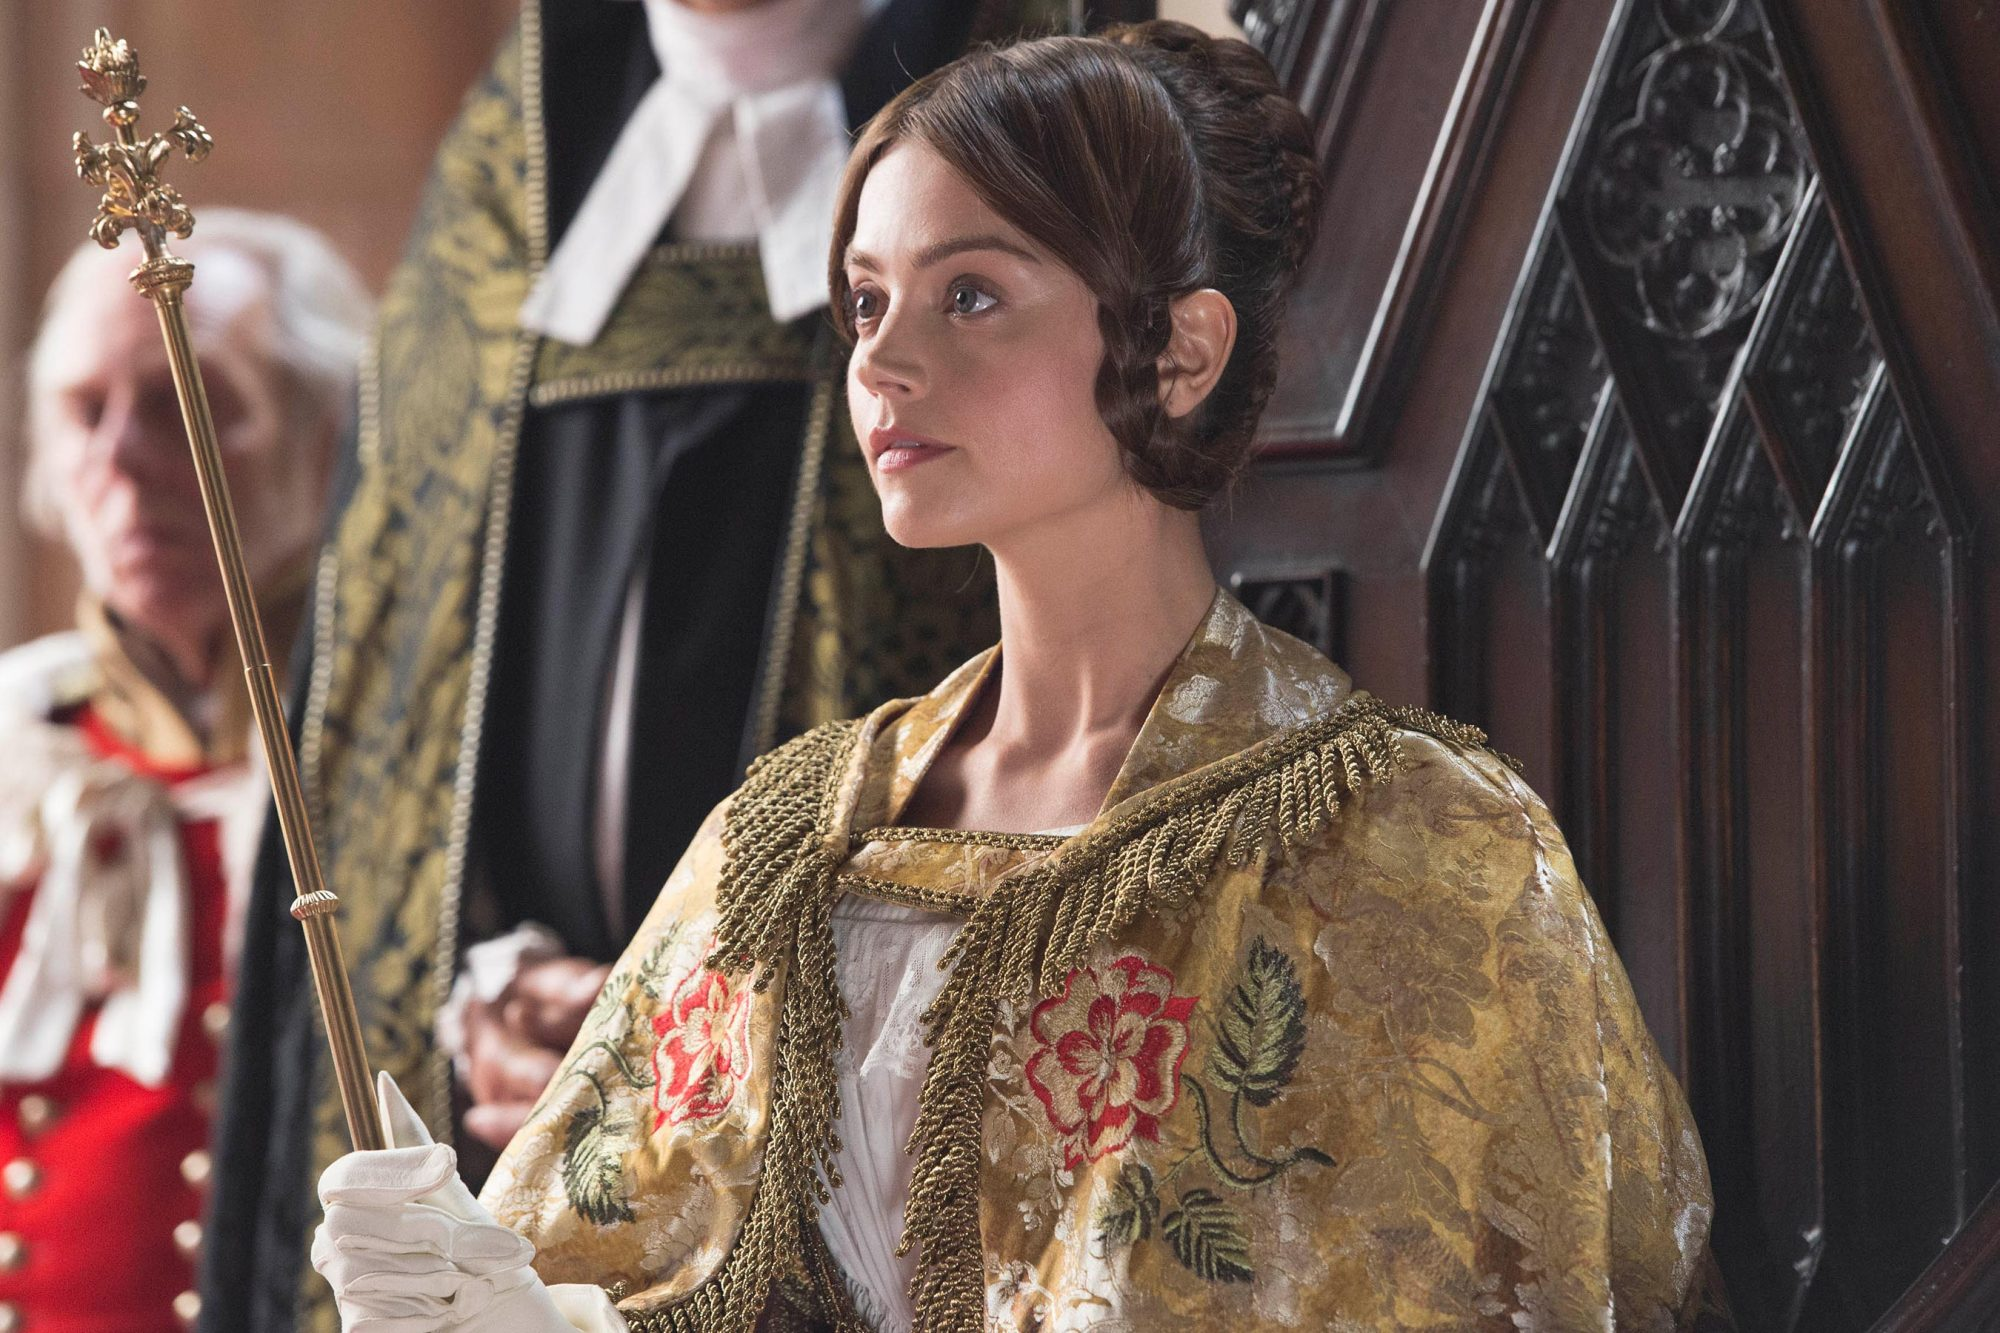 VictoriaEpisode One JANUARY 15, 2017 JENNA COLEMAN as Victoria